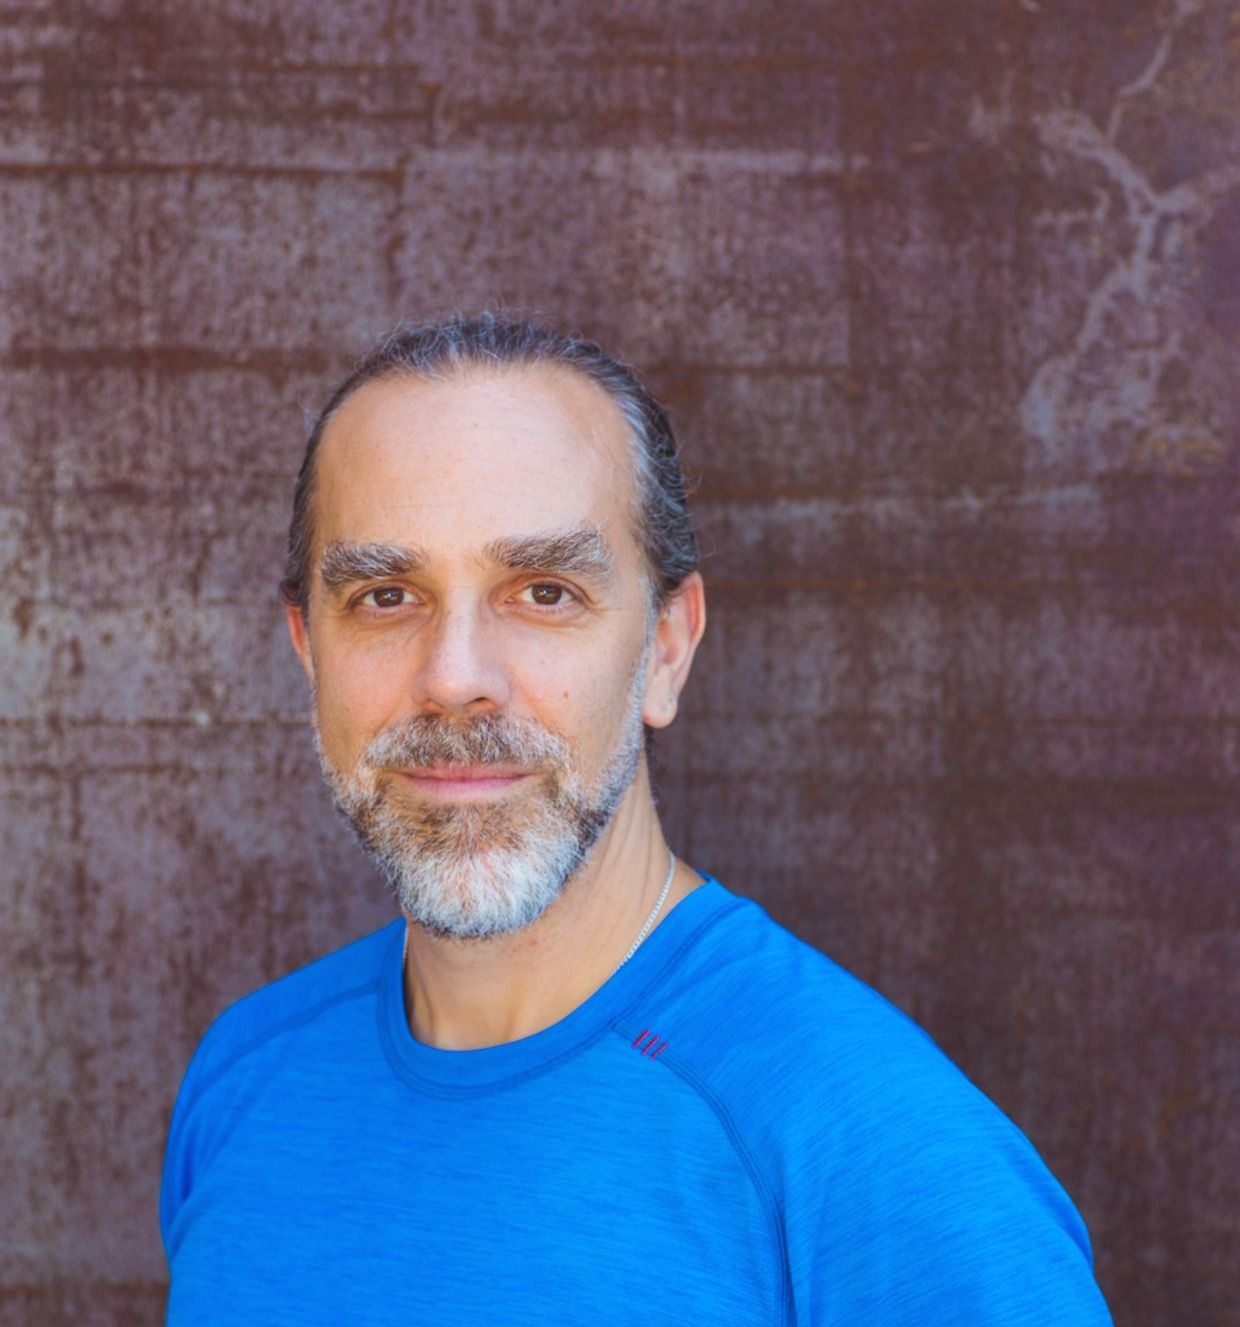 Astro Teller, head of X, Alphabet's innovation lab, leads a group of engineers, inventors, and designers devoted to futuristic moonshot projects.